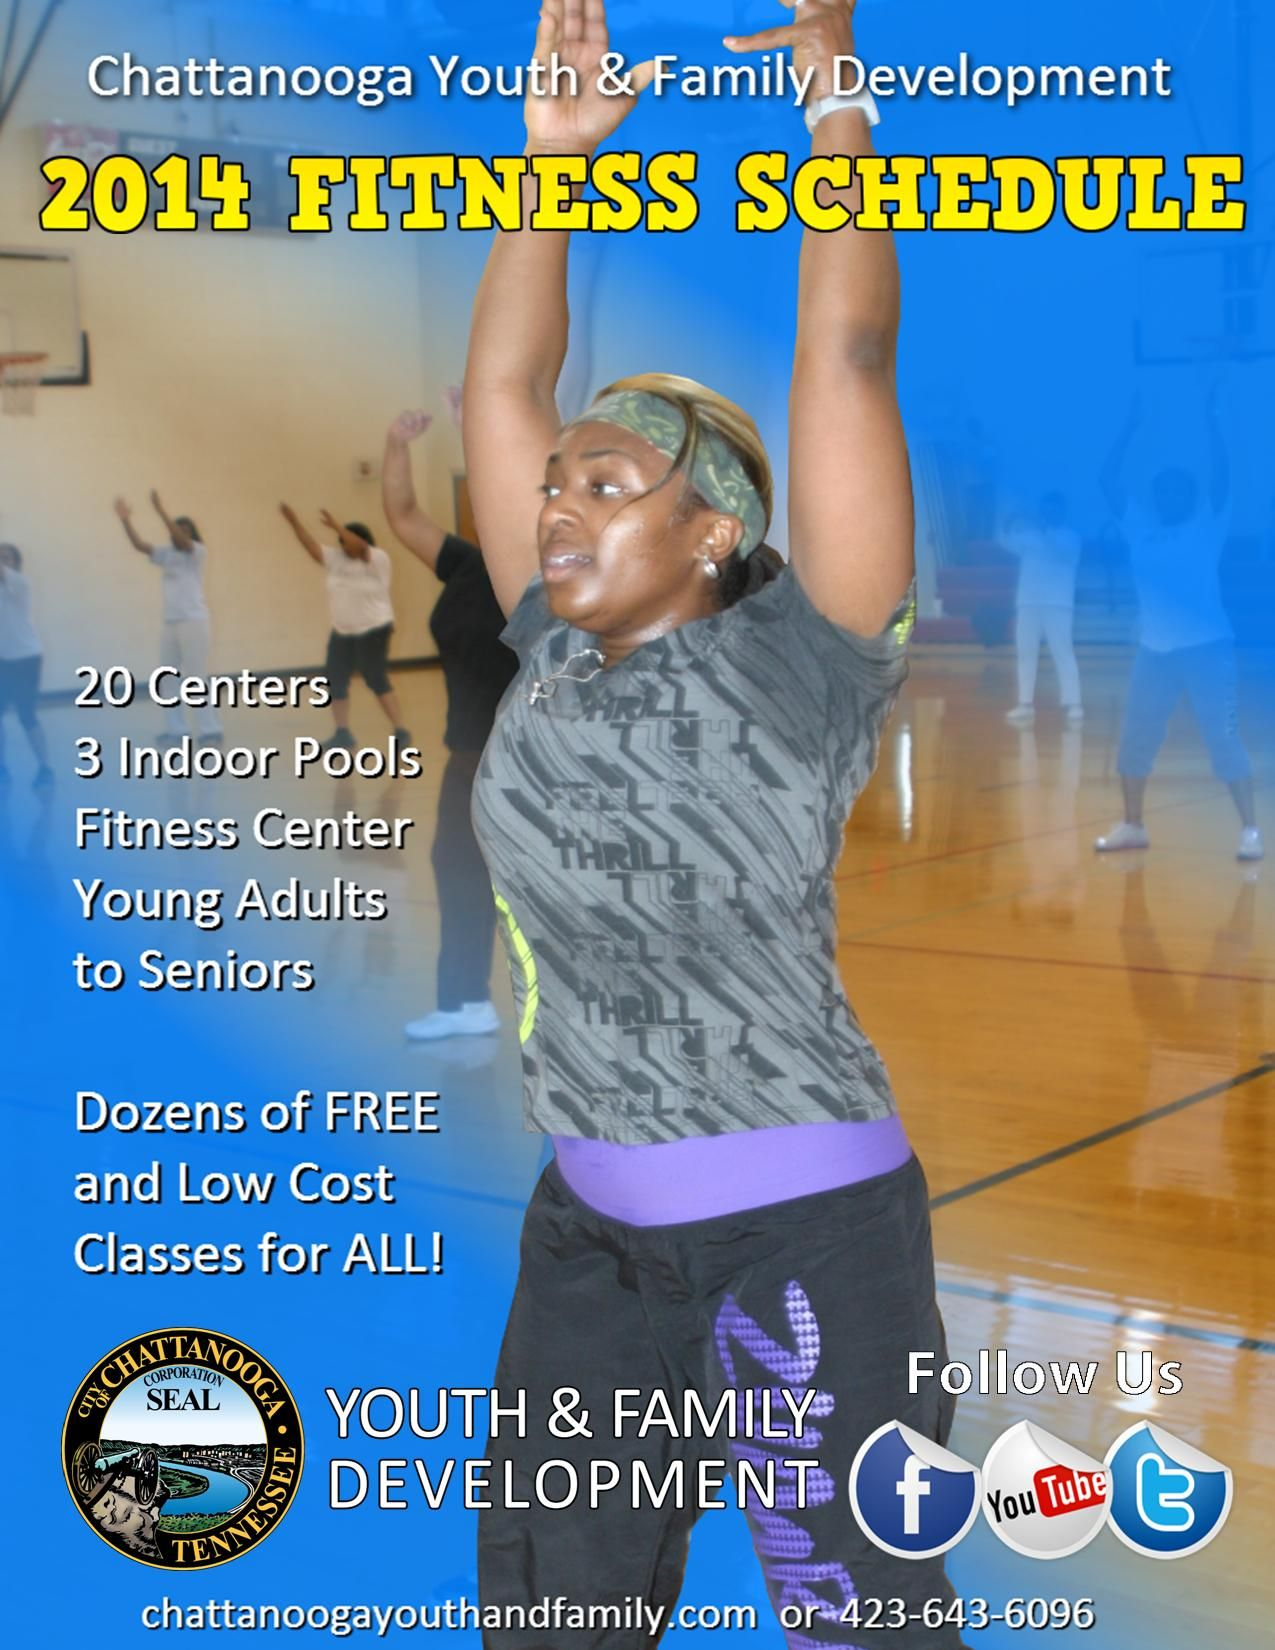 Check out our full schedule here http//www.chattanooga